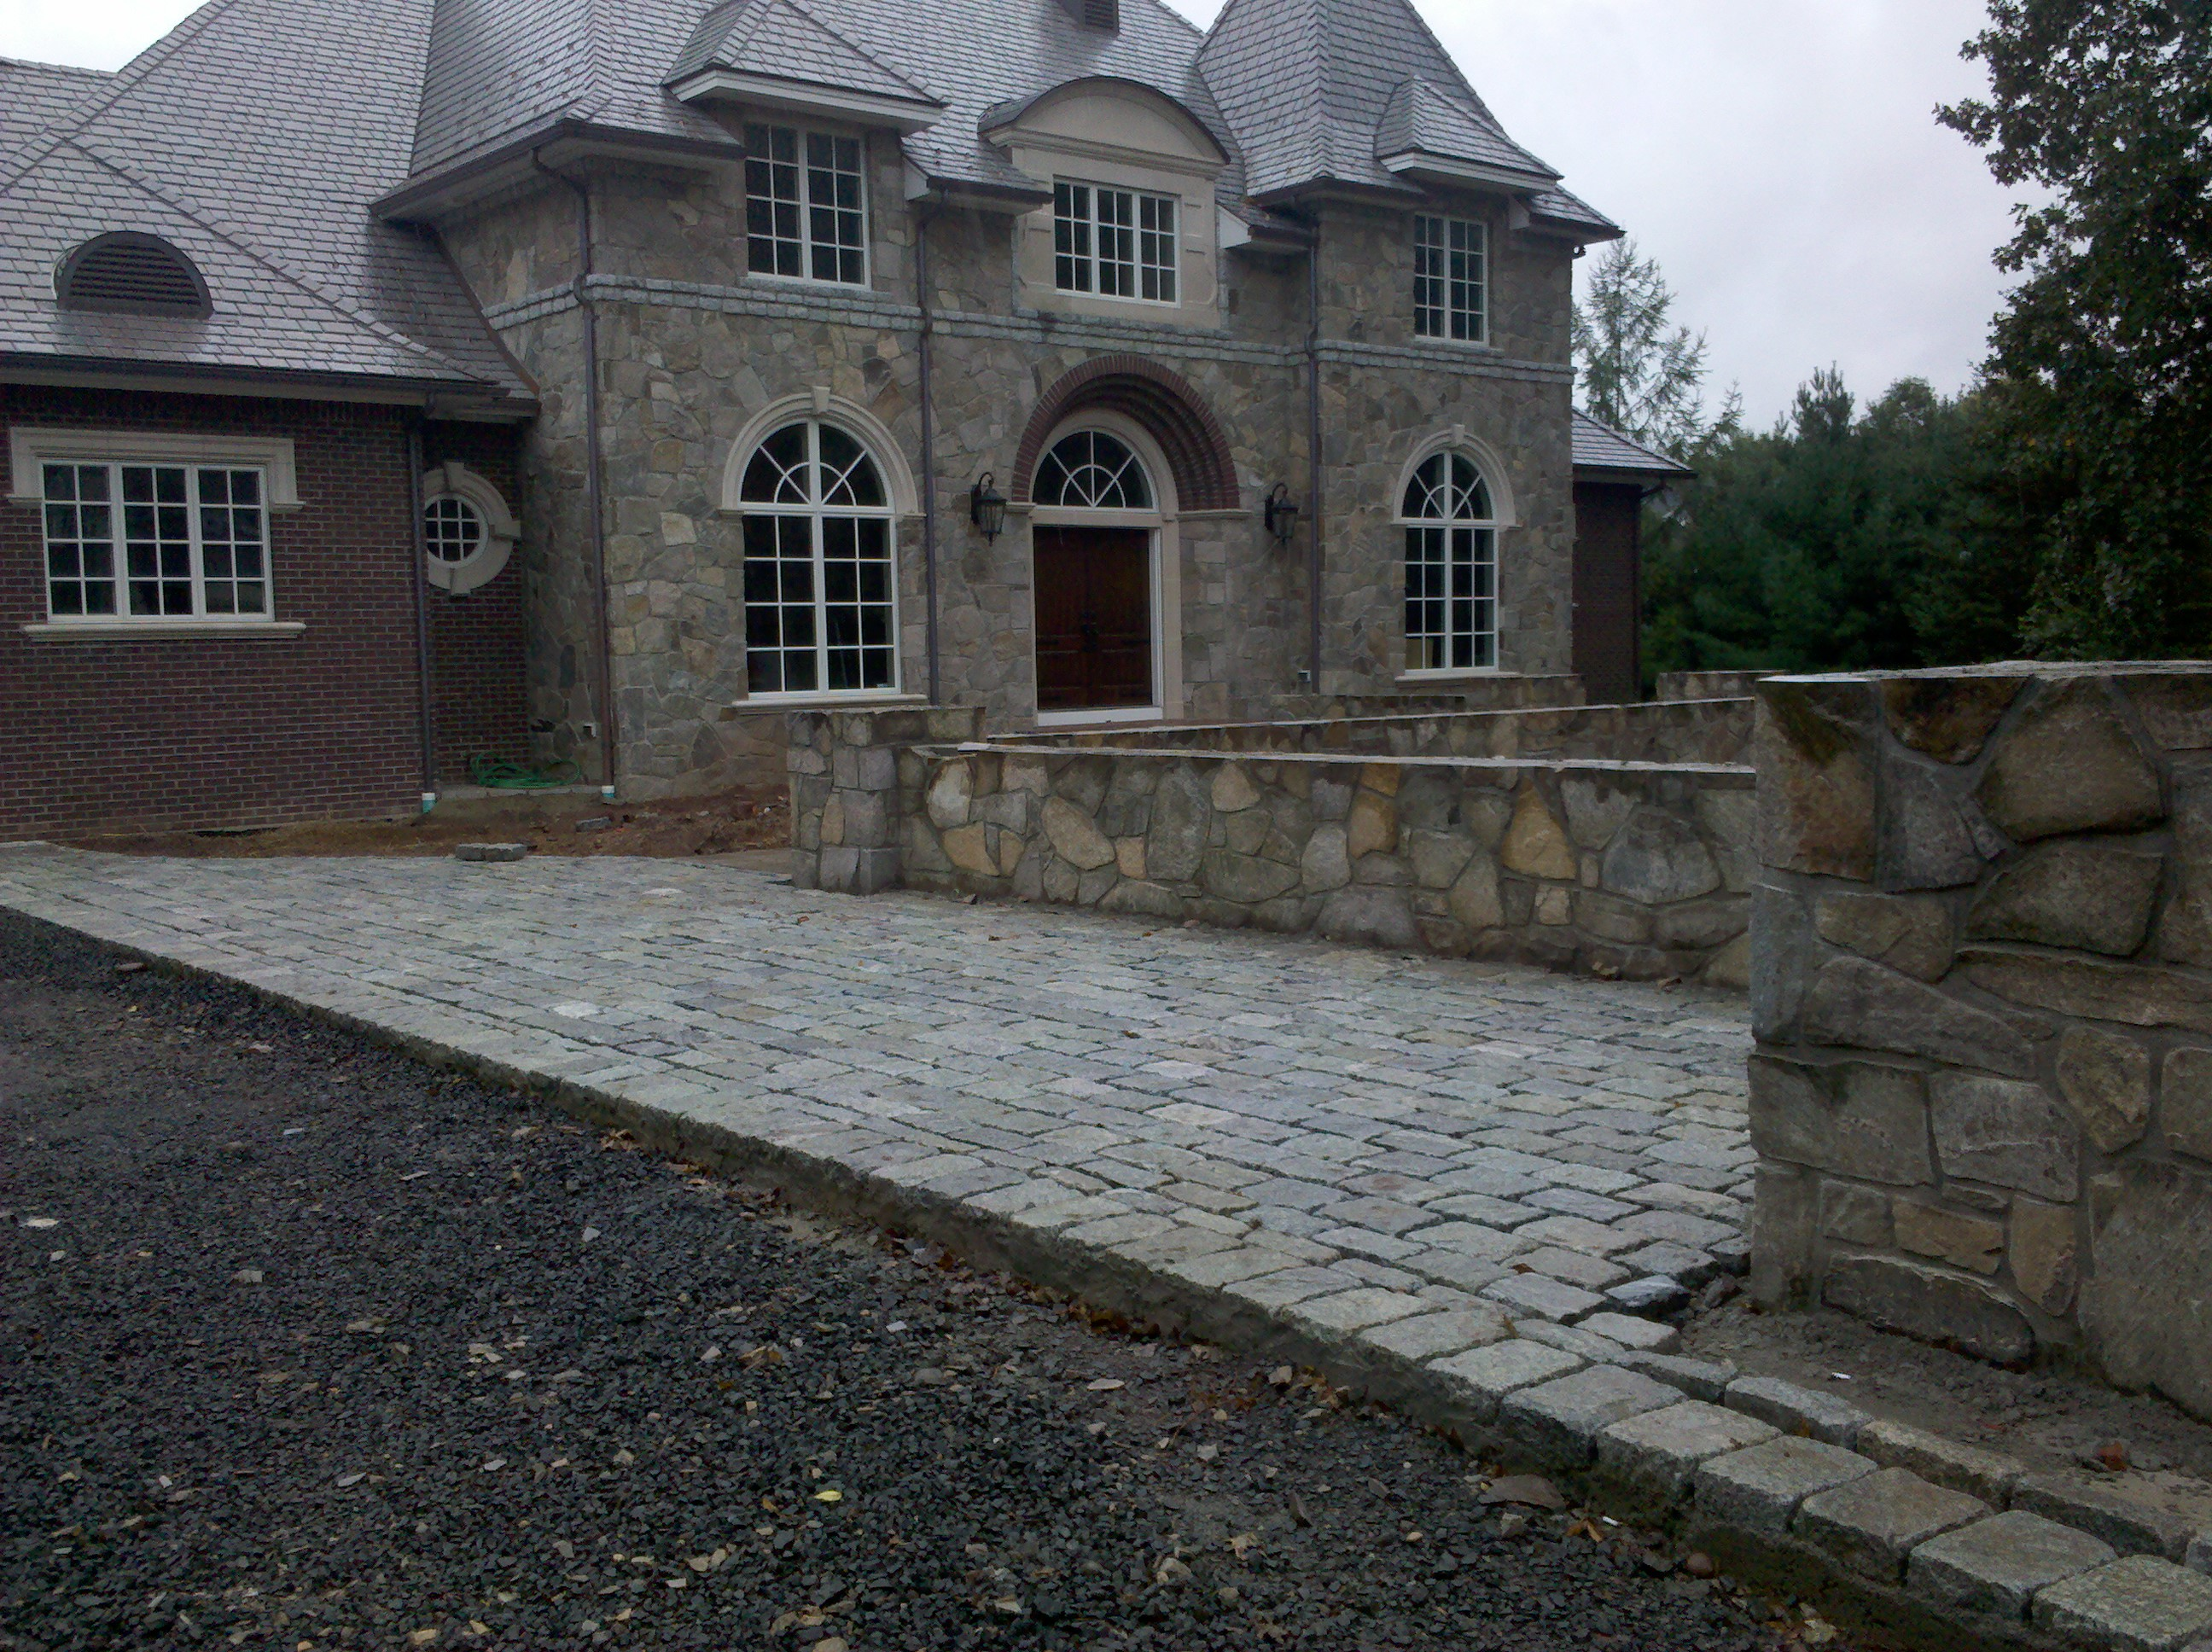 Outdoor Living And Landscaping Appeals To All Senses In This Luxury Home Www Outdoorlivingct